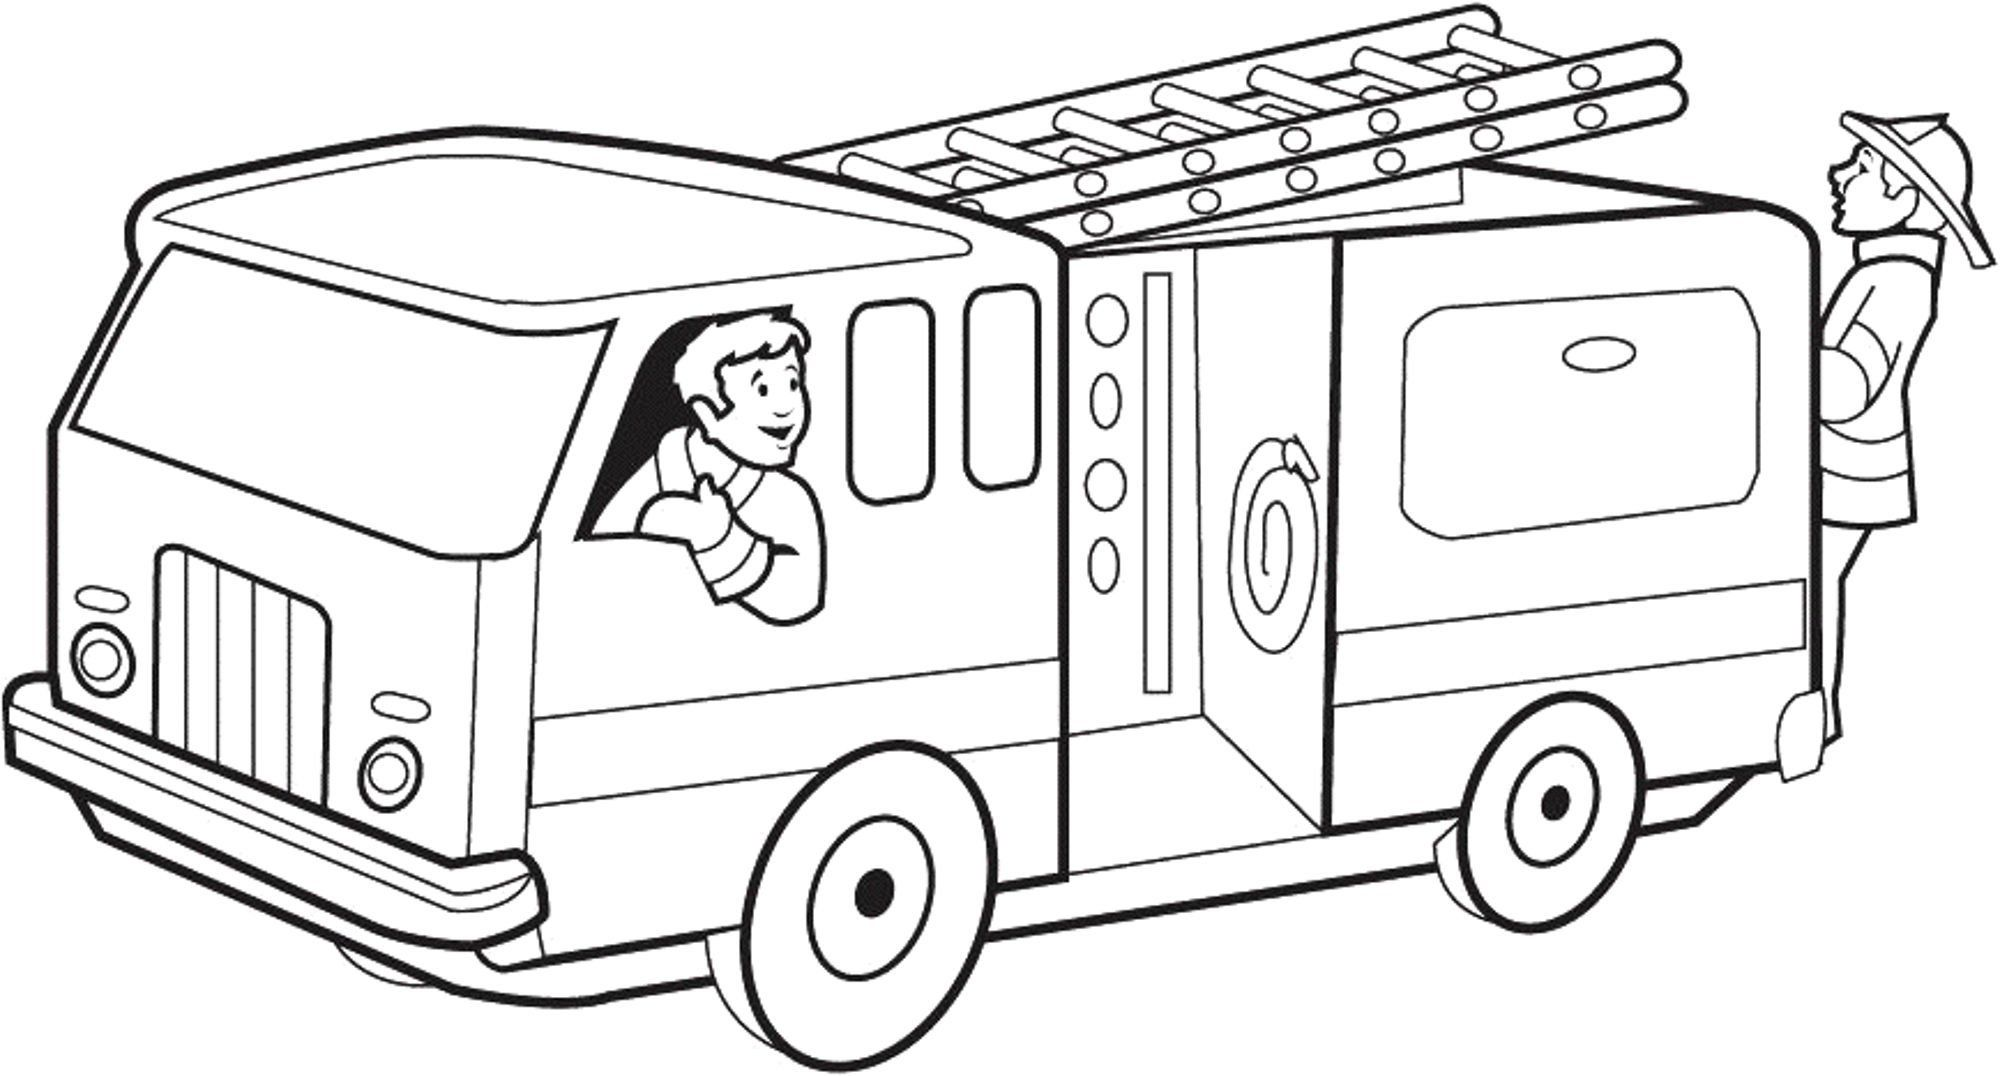 Fire Truck Coloring Page Luxury Of Fire Truck Color Page Sabadaphnecottage In 2020 Fire Truck Drawing Fire Trucks Firetruck Coloring Page